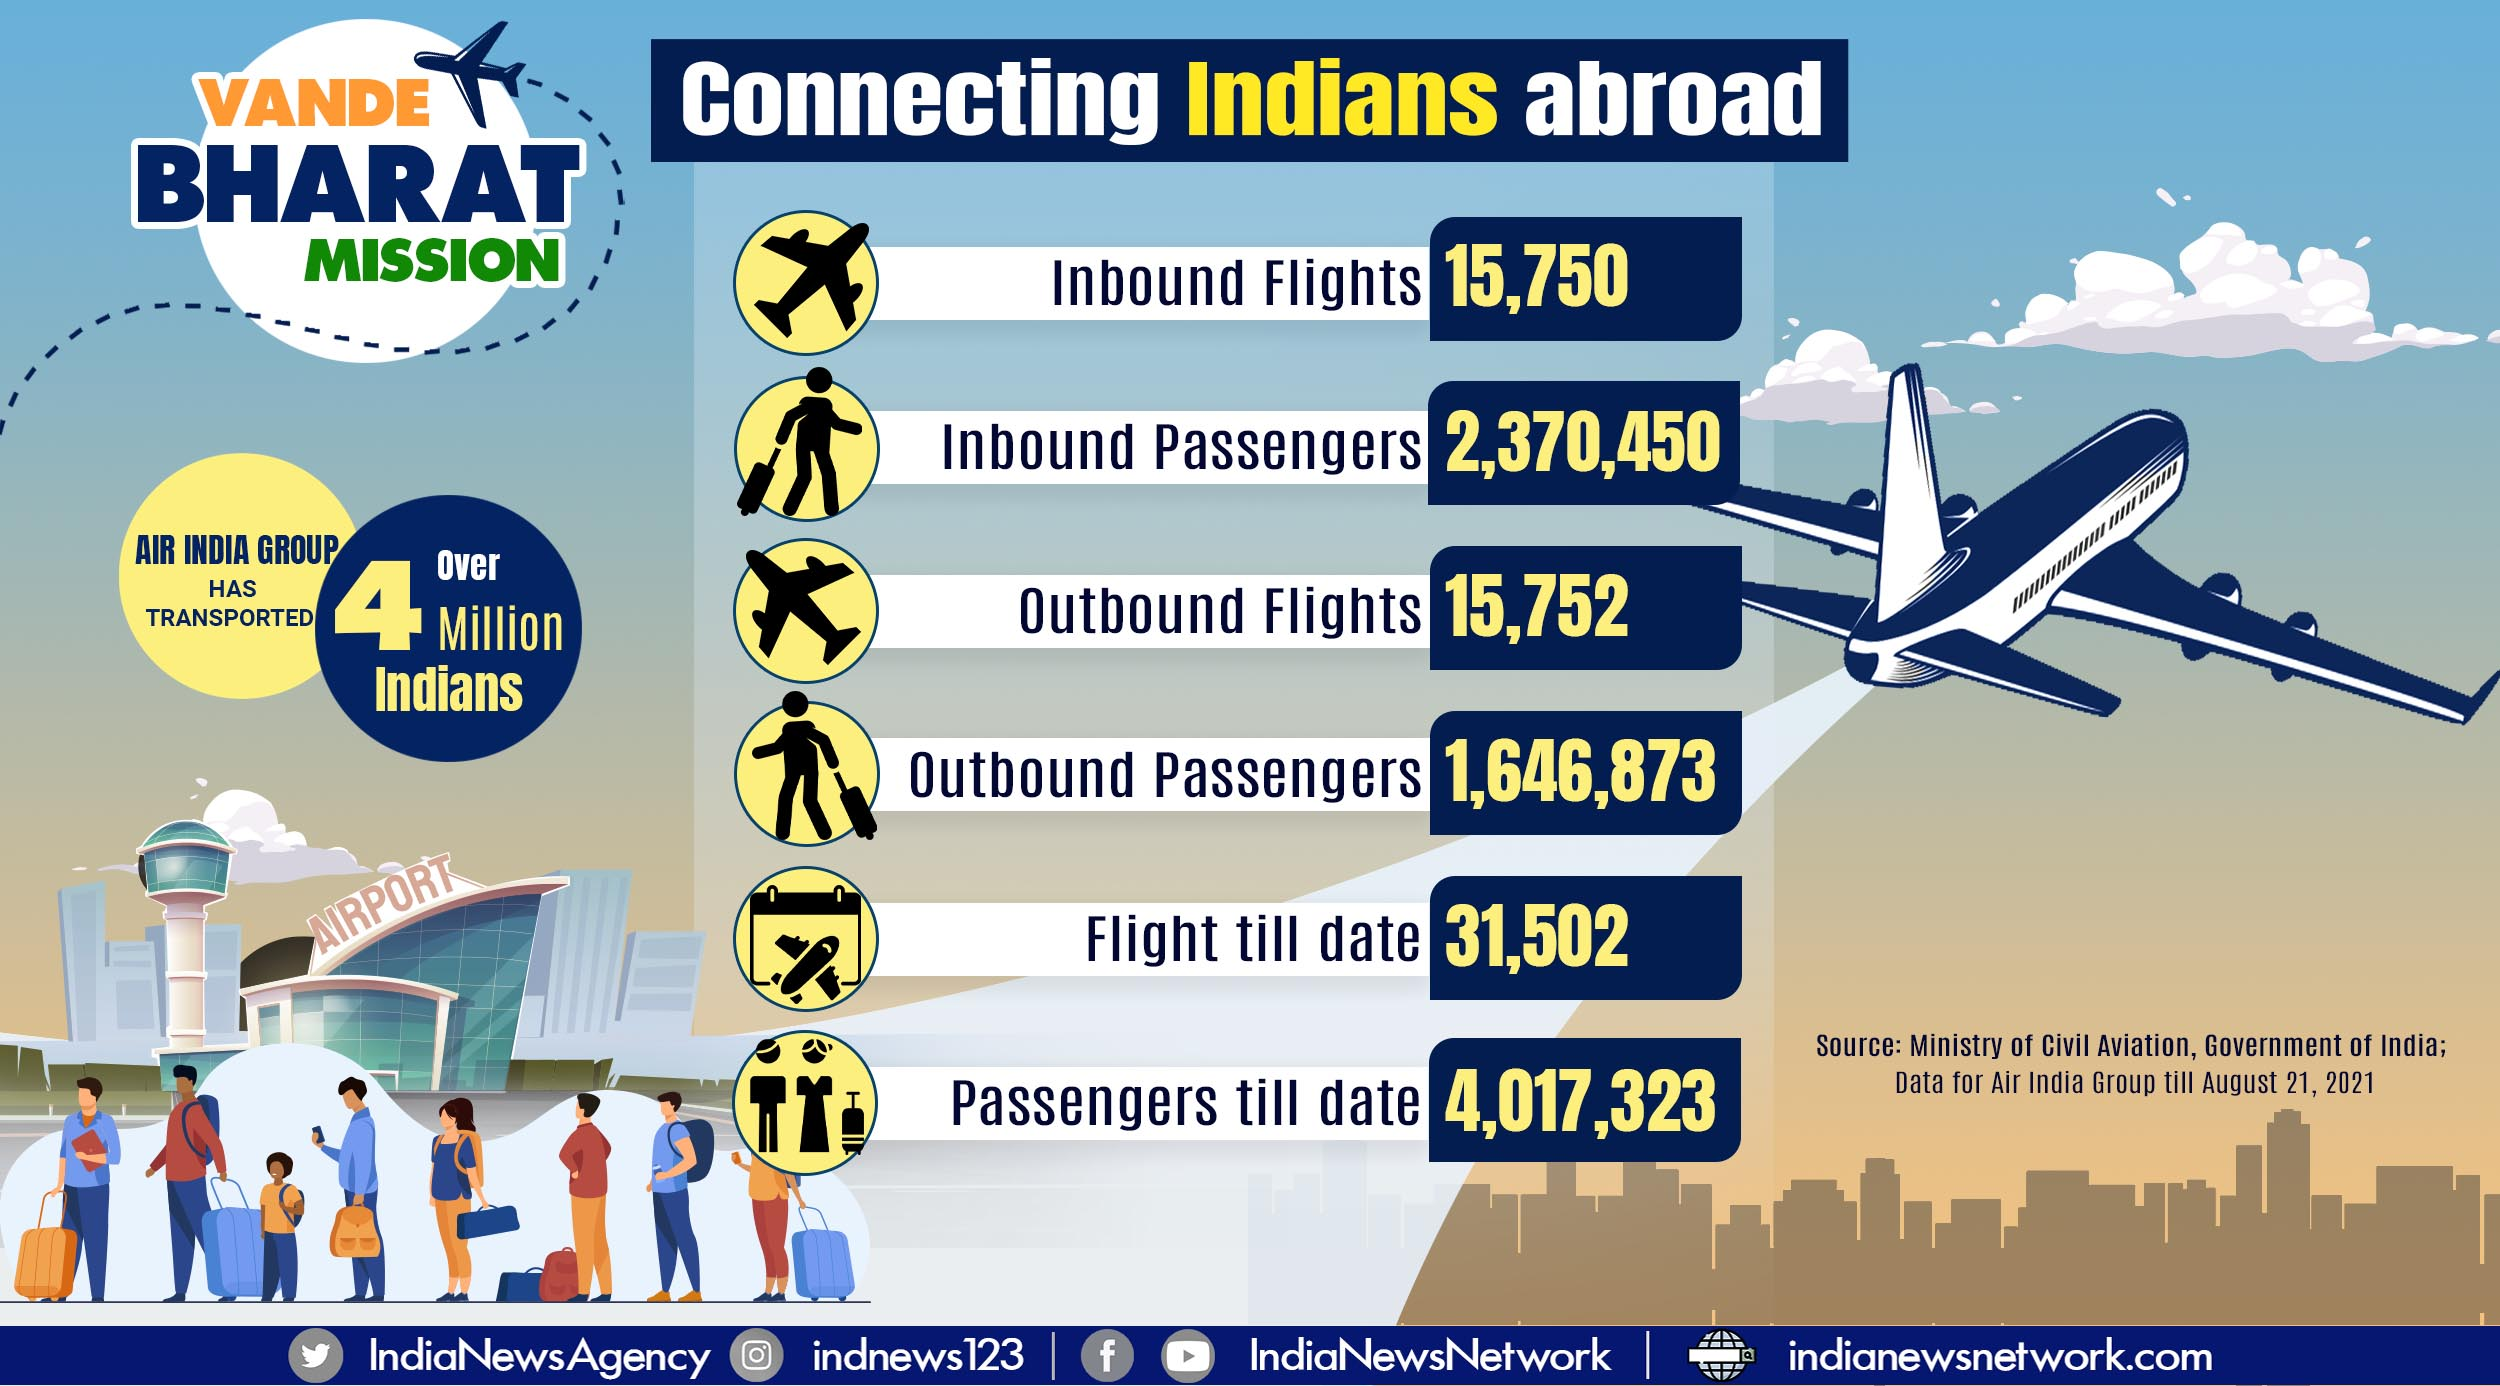 Vande Bharat Mission: Air India Group has transported over 4 million Indians